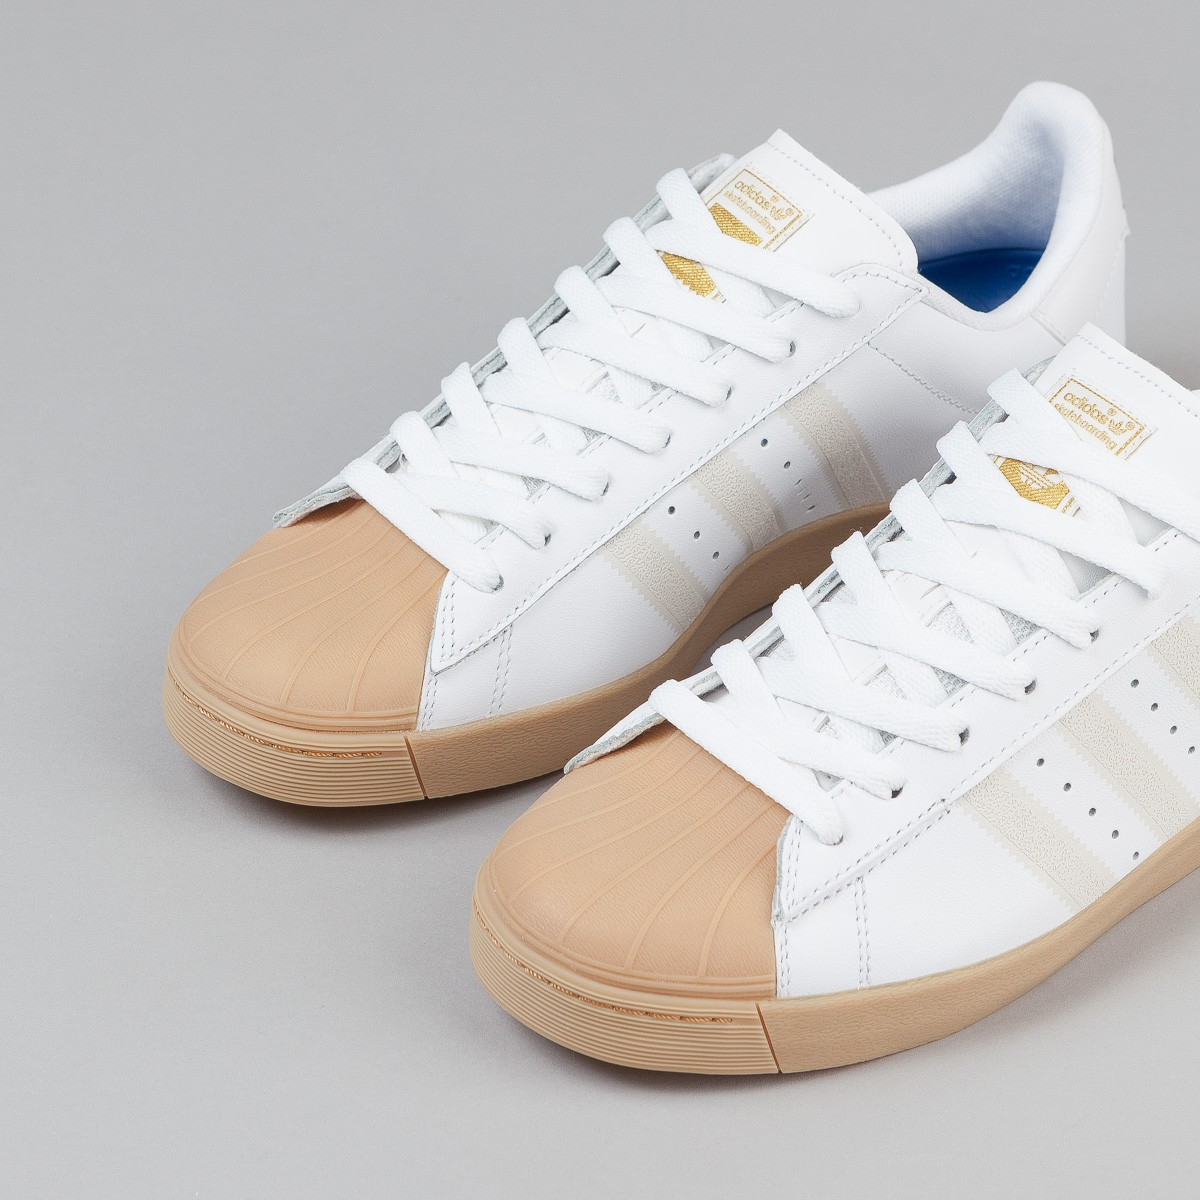 adidas-superstar-vulc-shoes-ftwr-white-ftwr-white-gum-7.jpg